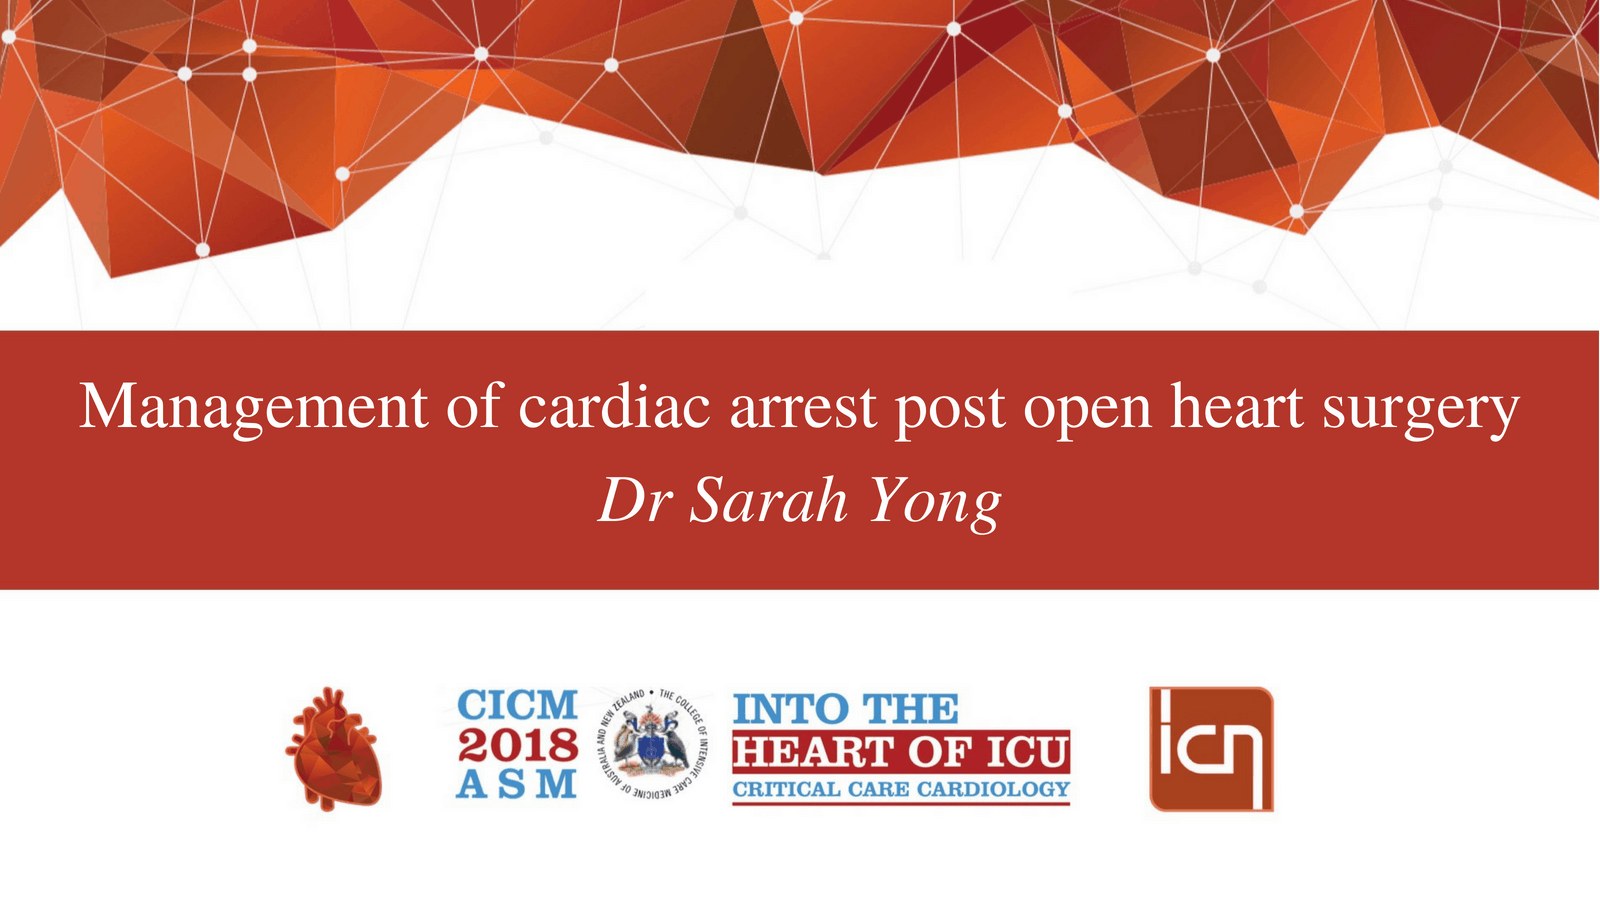 Management of cardiac arrest post open heart surgery.